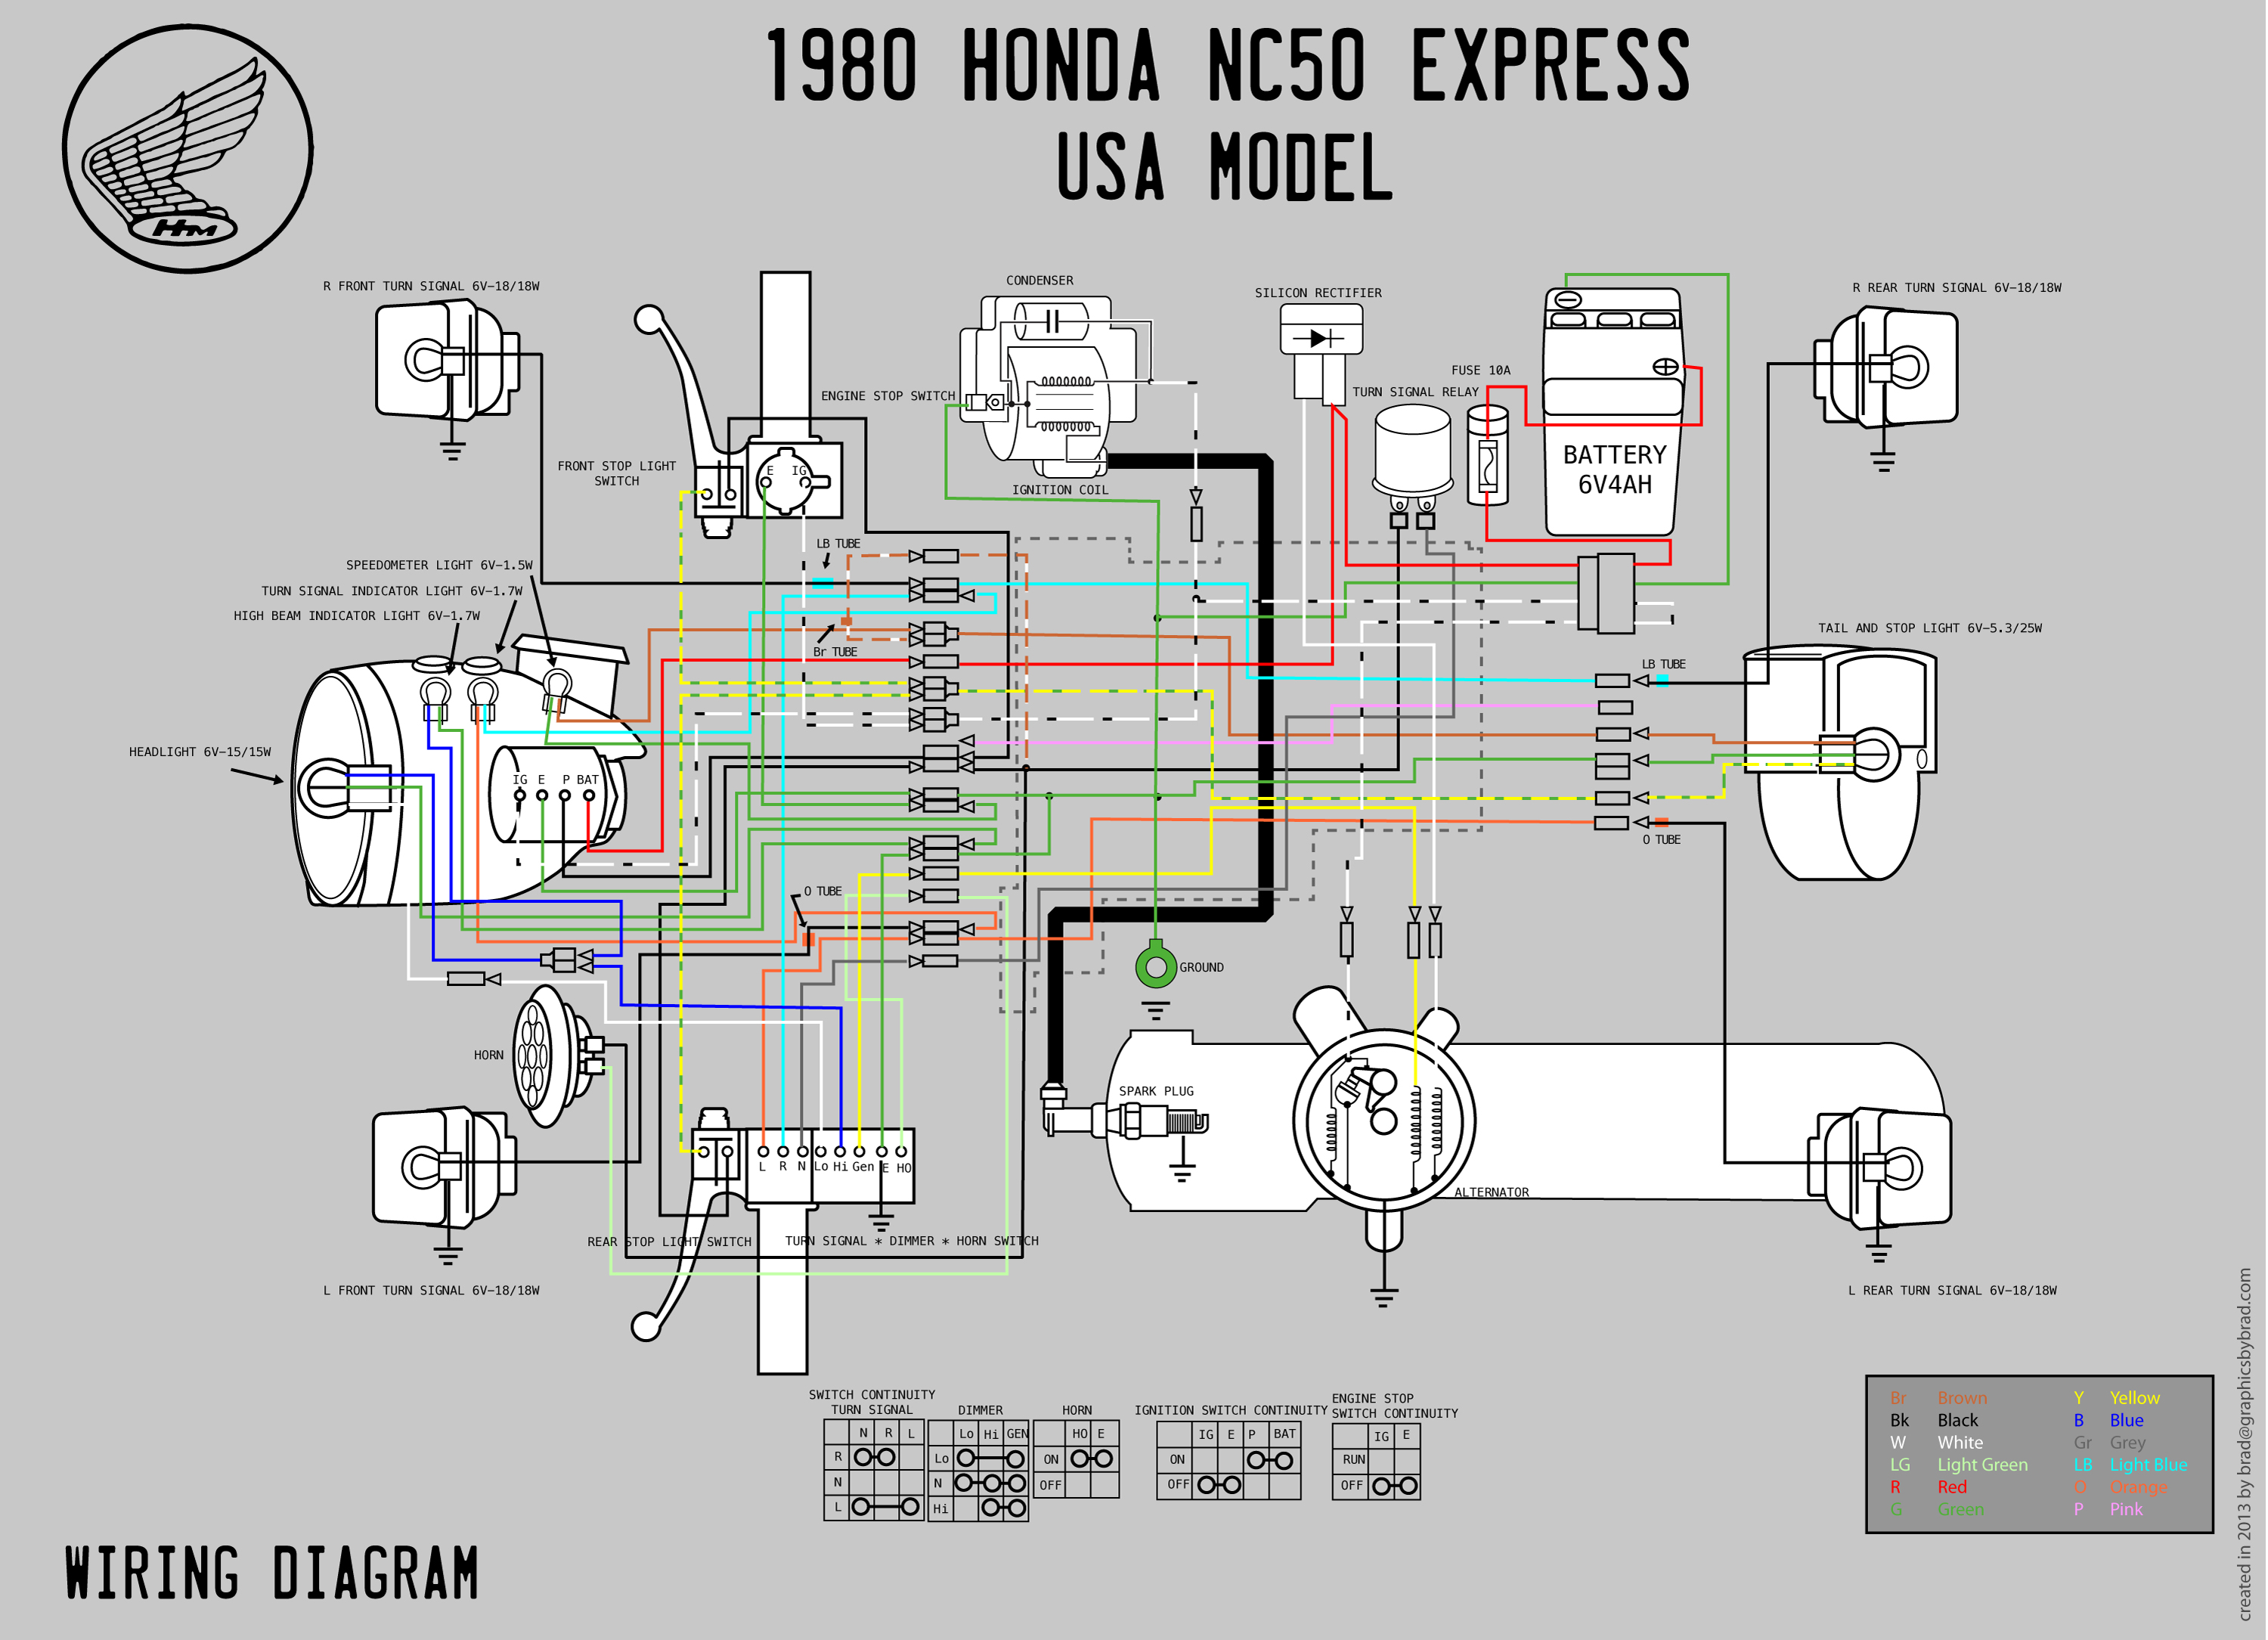 1980 nc50 wiring lrg honda wiring schematics detailed schematics diagram